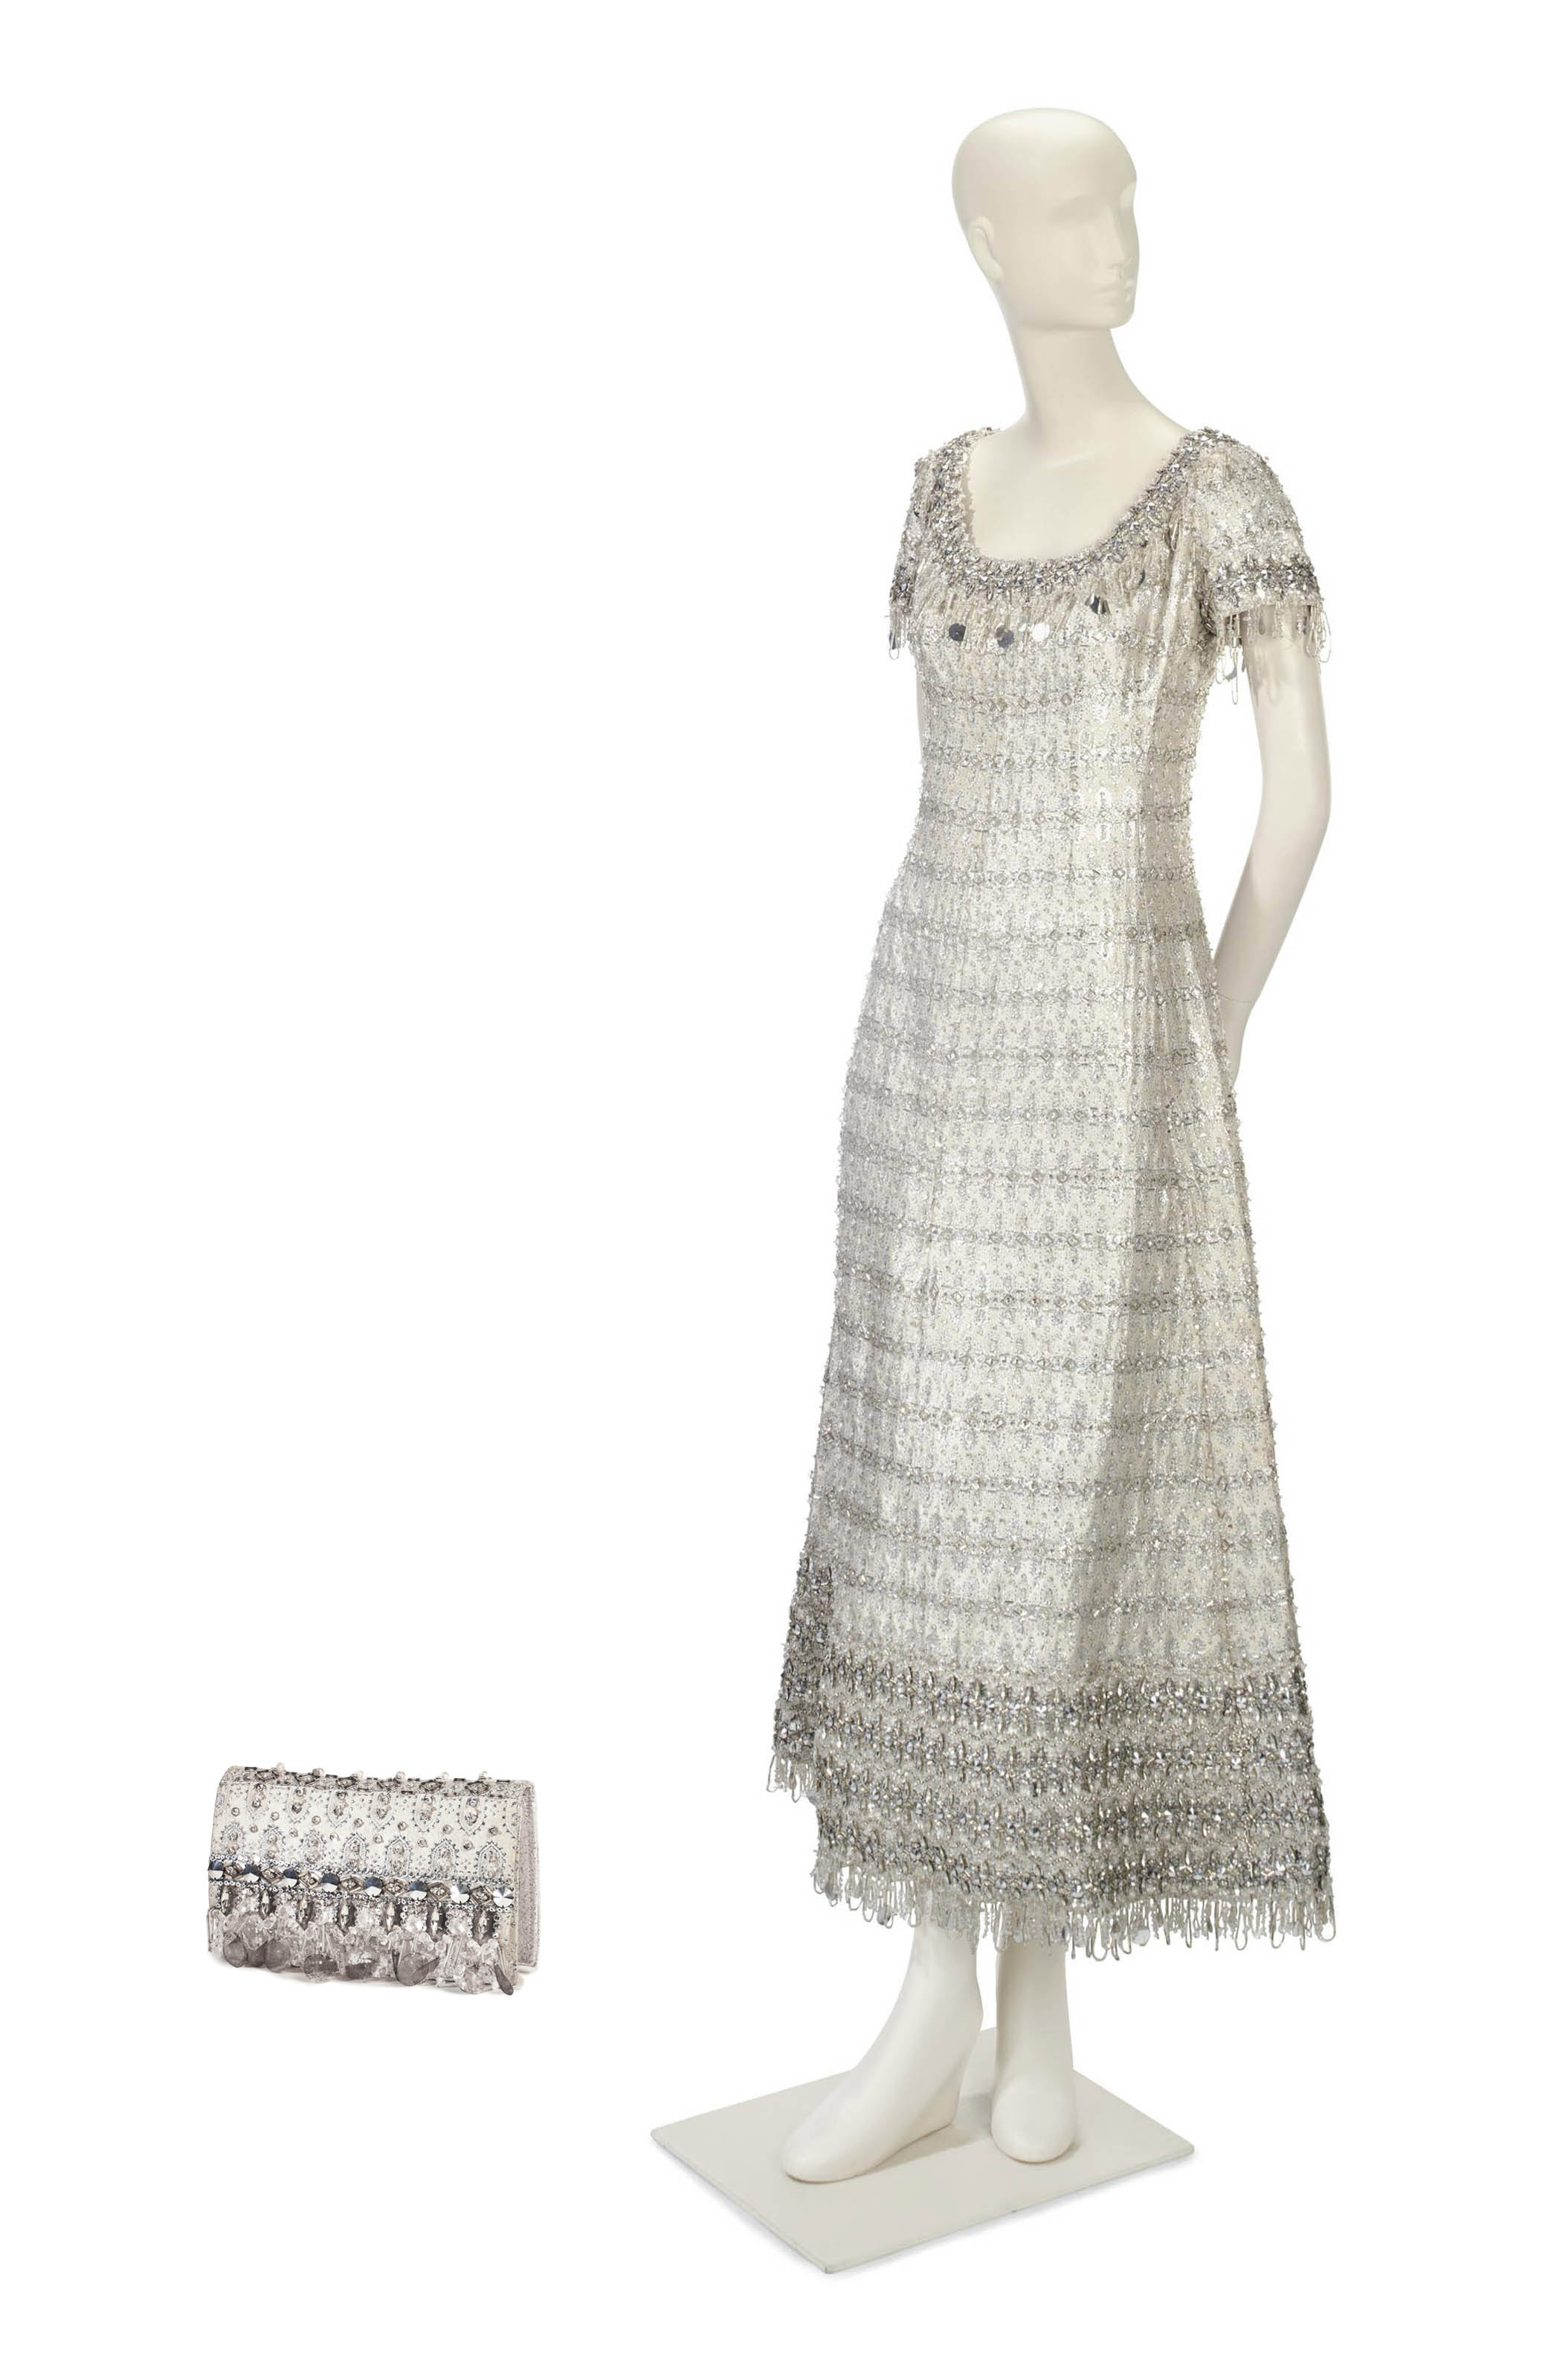 A CHRISTIAN DIOR EVENING GOWN OF SILVER ENCRUSTED BROCADE WITH MATCHING EVENING BAG